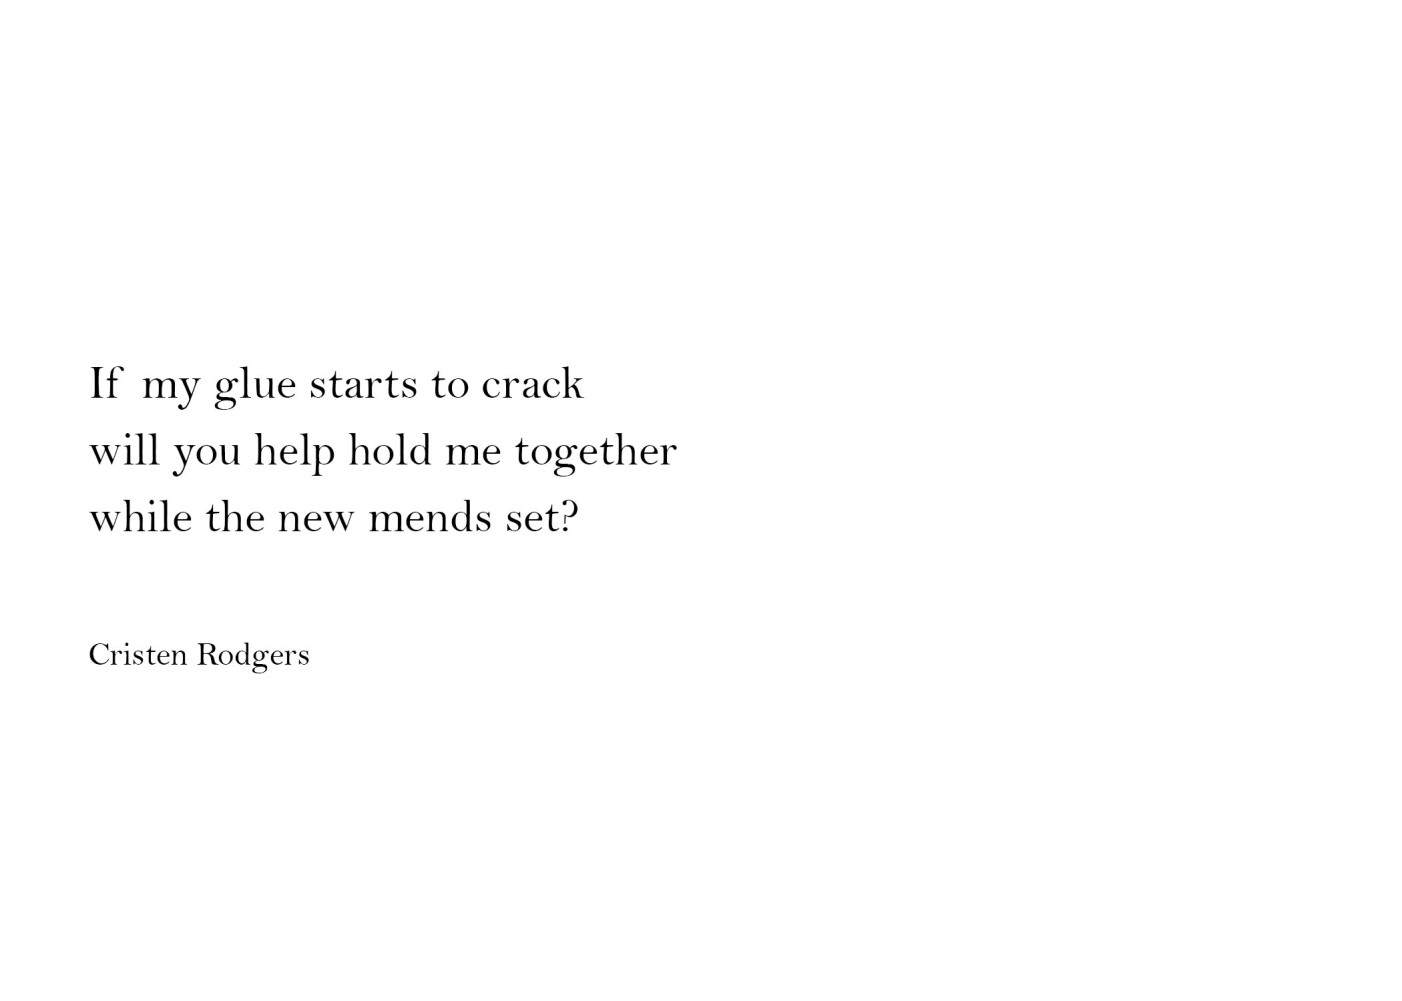 will you help hold me together